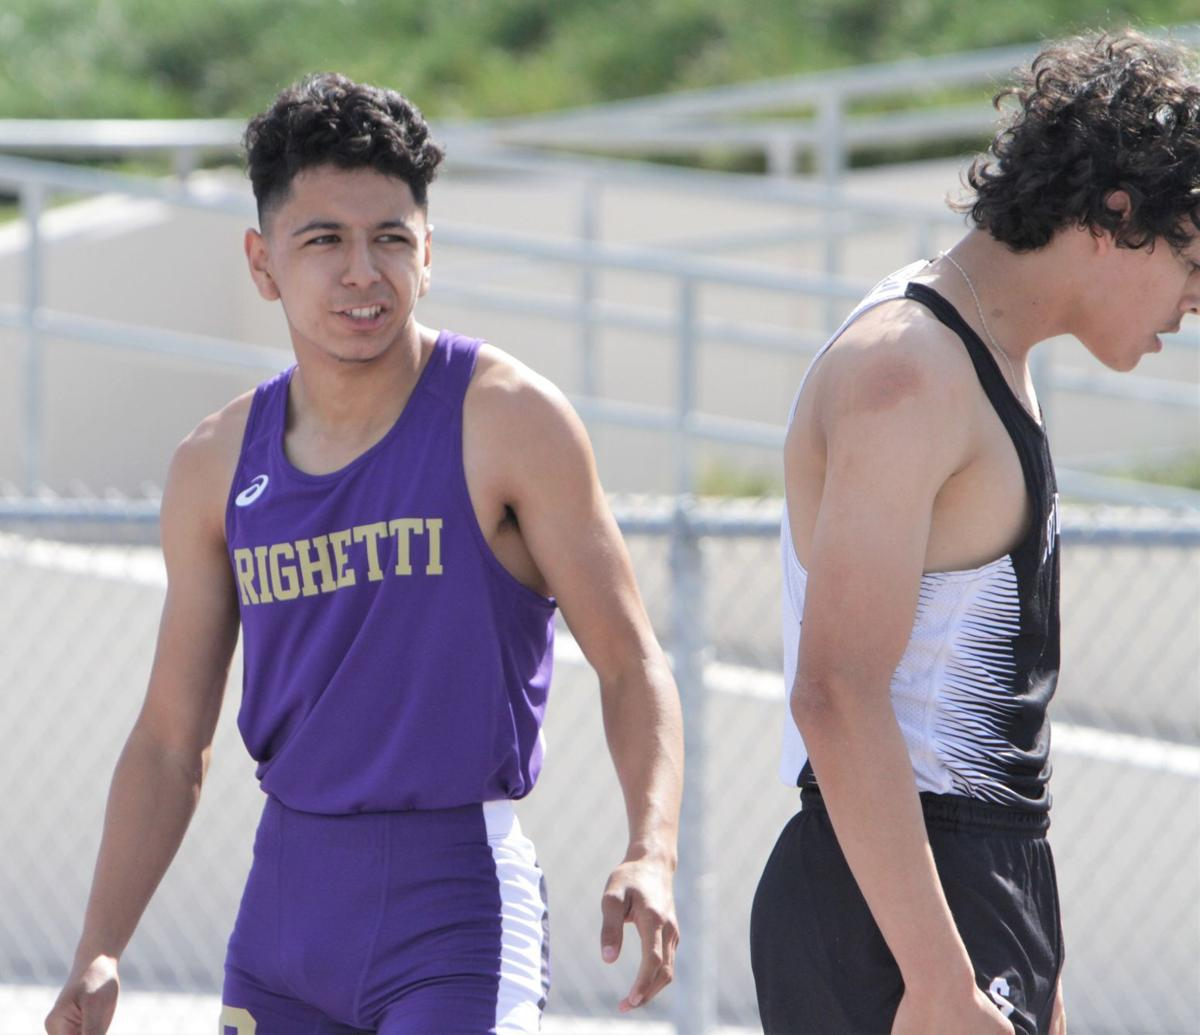 Photos: Righetti and Stockdale battle in track dual